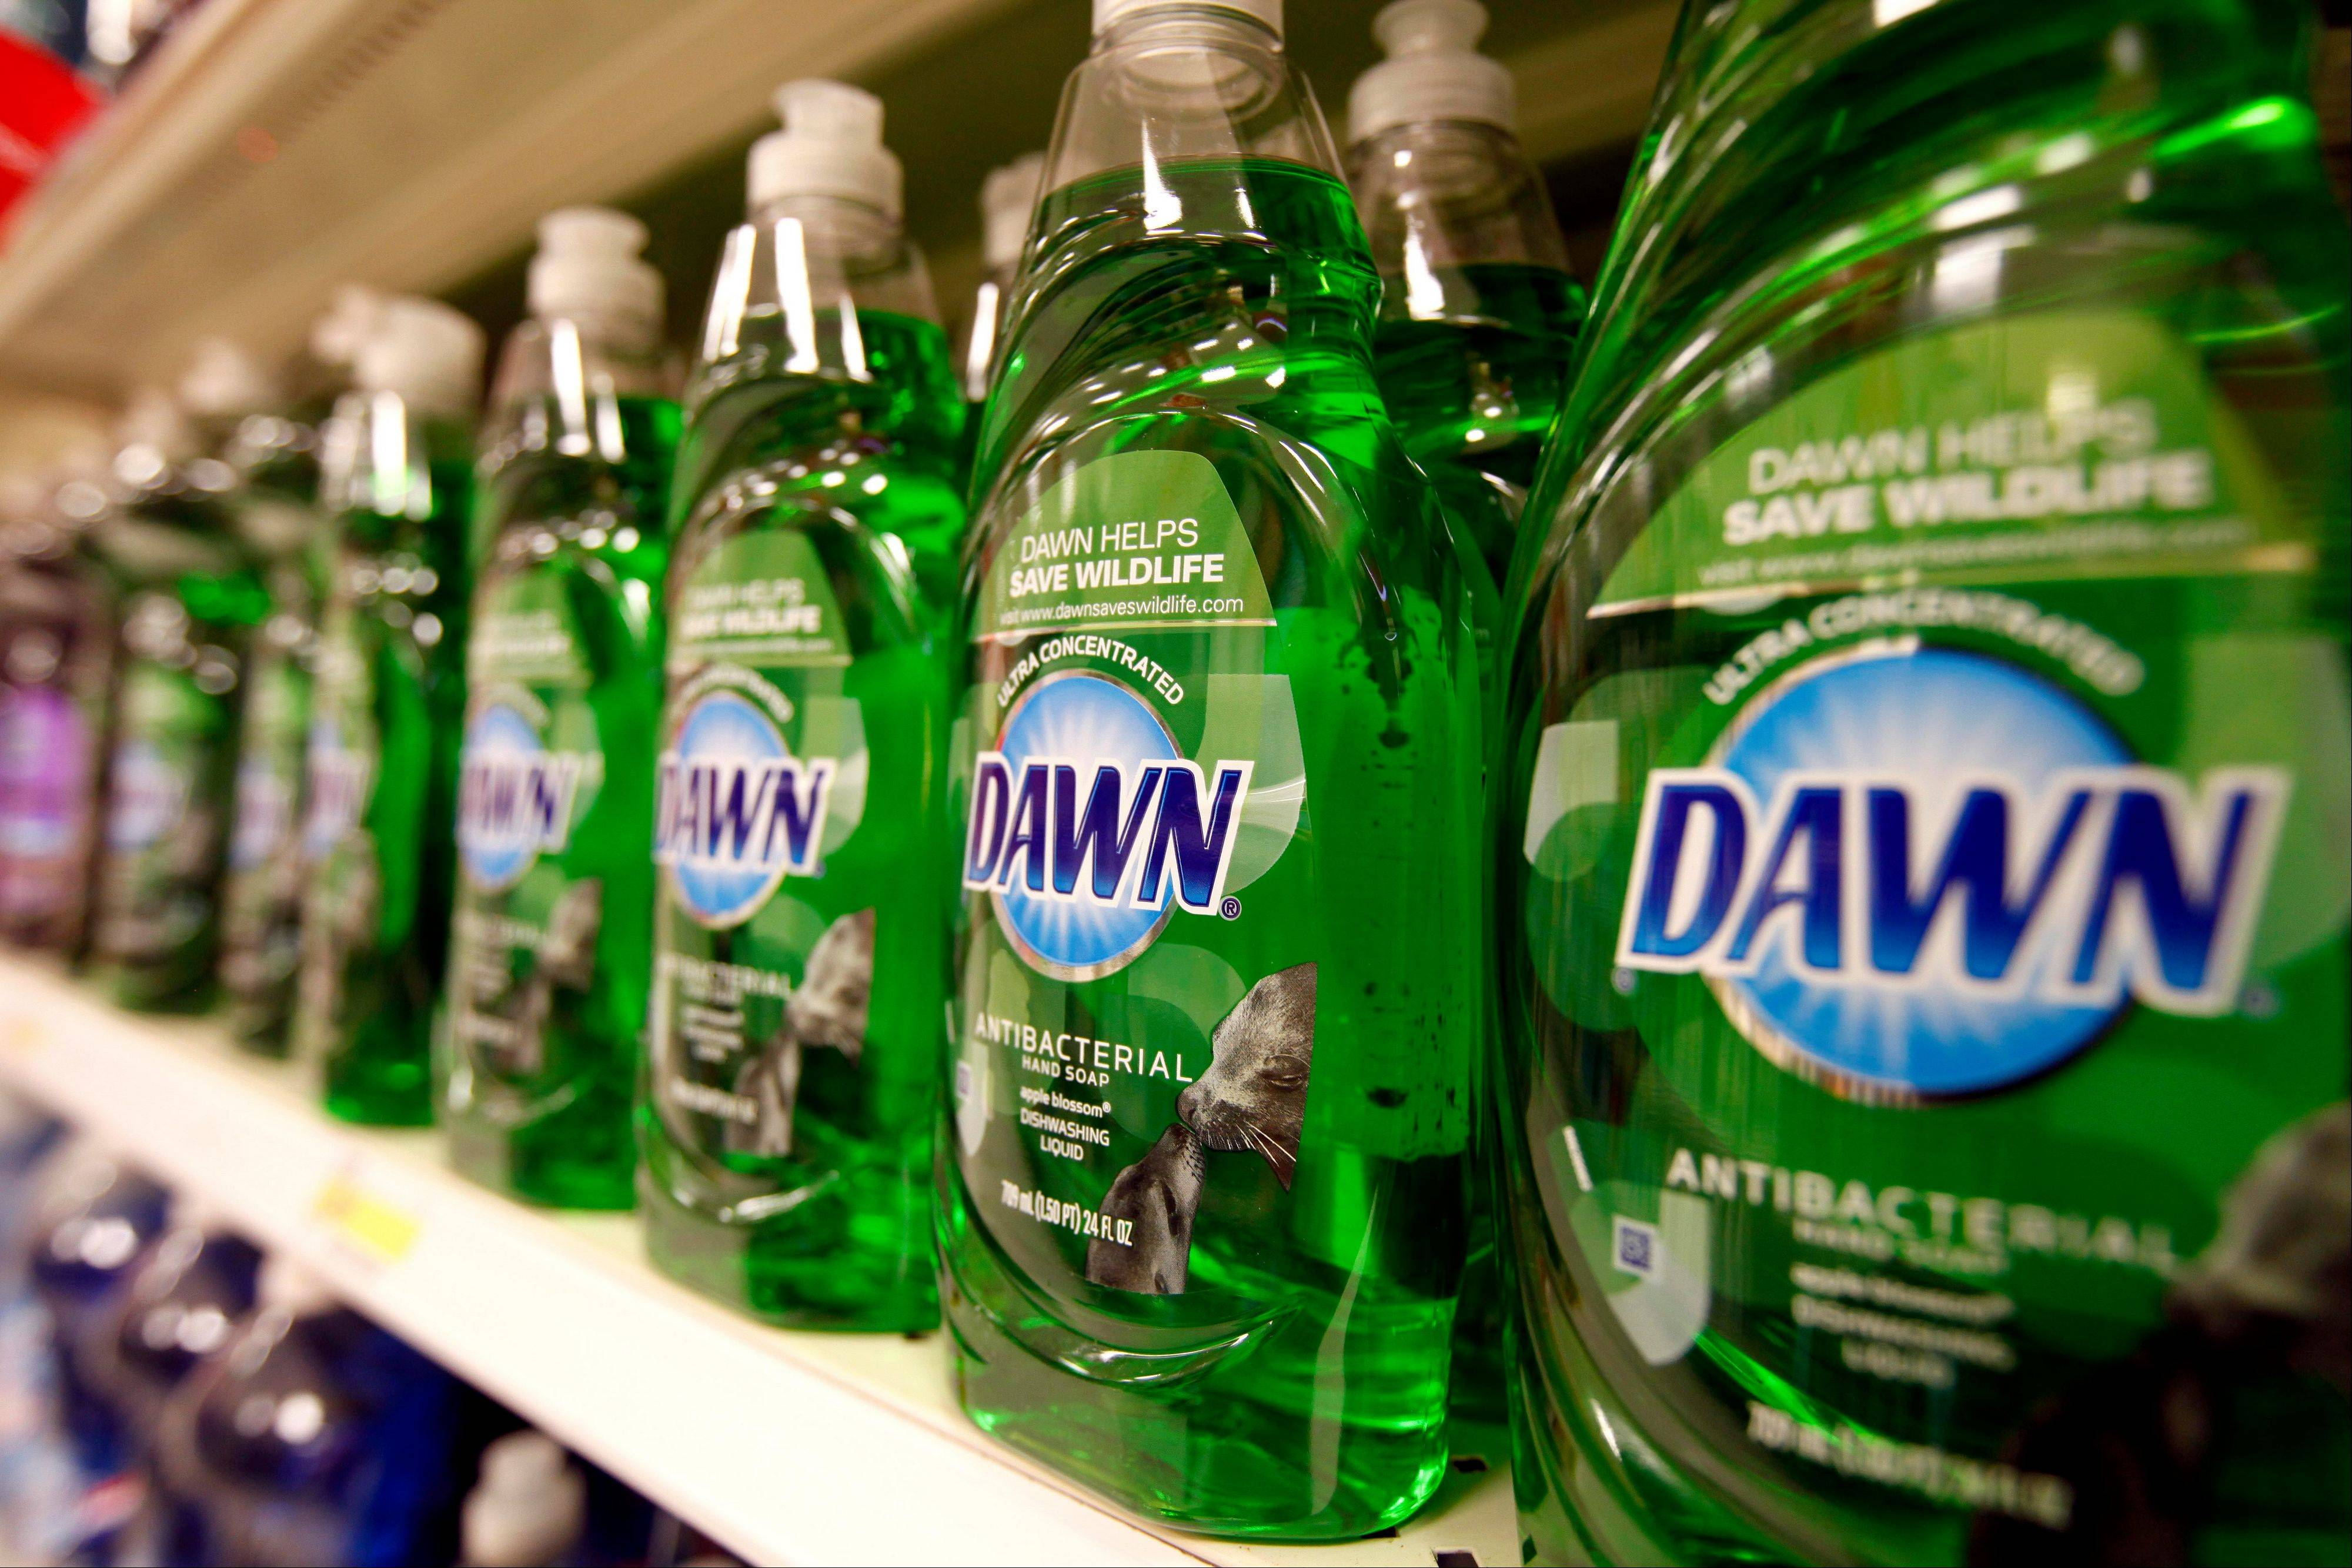 Dawn, a Procter & Gamble product, at a Target in Durham, N.C. The company says its second-quarter net income fell 16 percent as the world's largest consumer products maker faced tough comparisons from a year ago, the stronger dollar and flat sales globally.